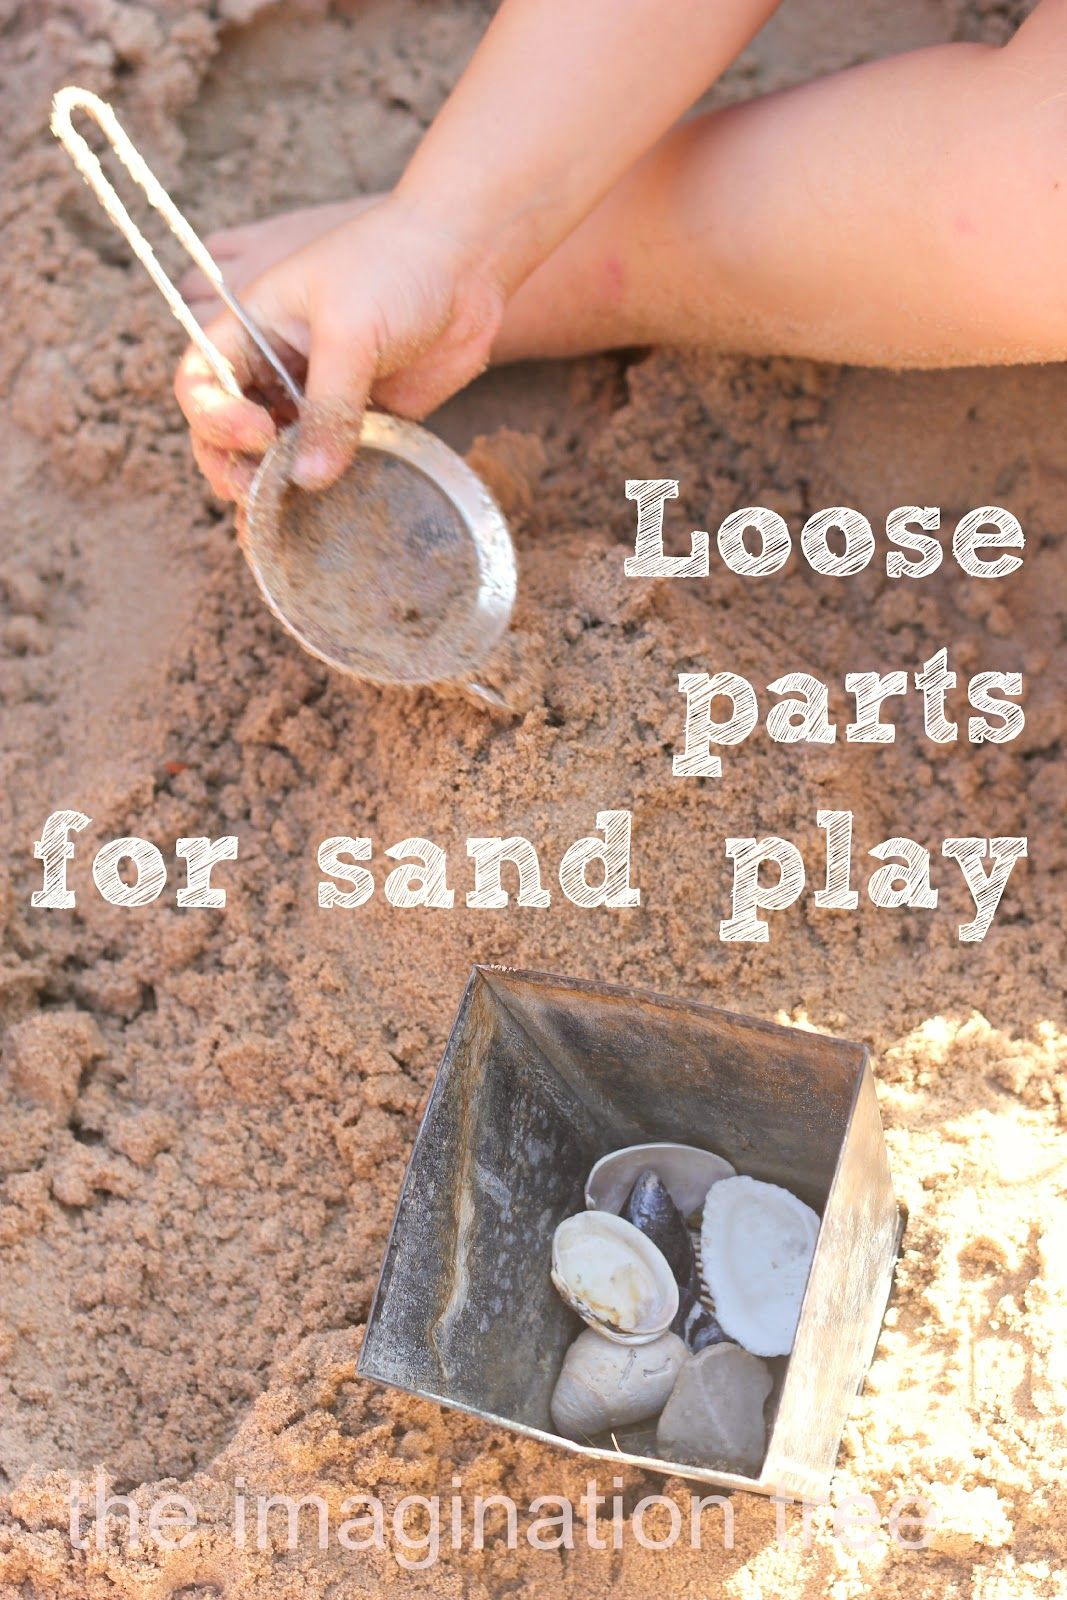 Big W Sand Pit Sand Play Ideas With Loose Parts Outdoors Sand Play